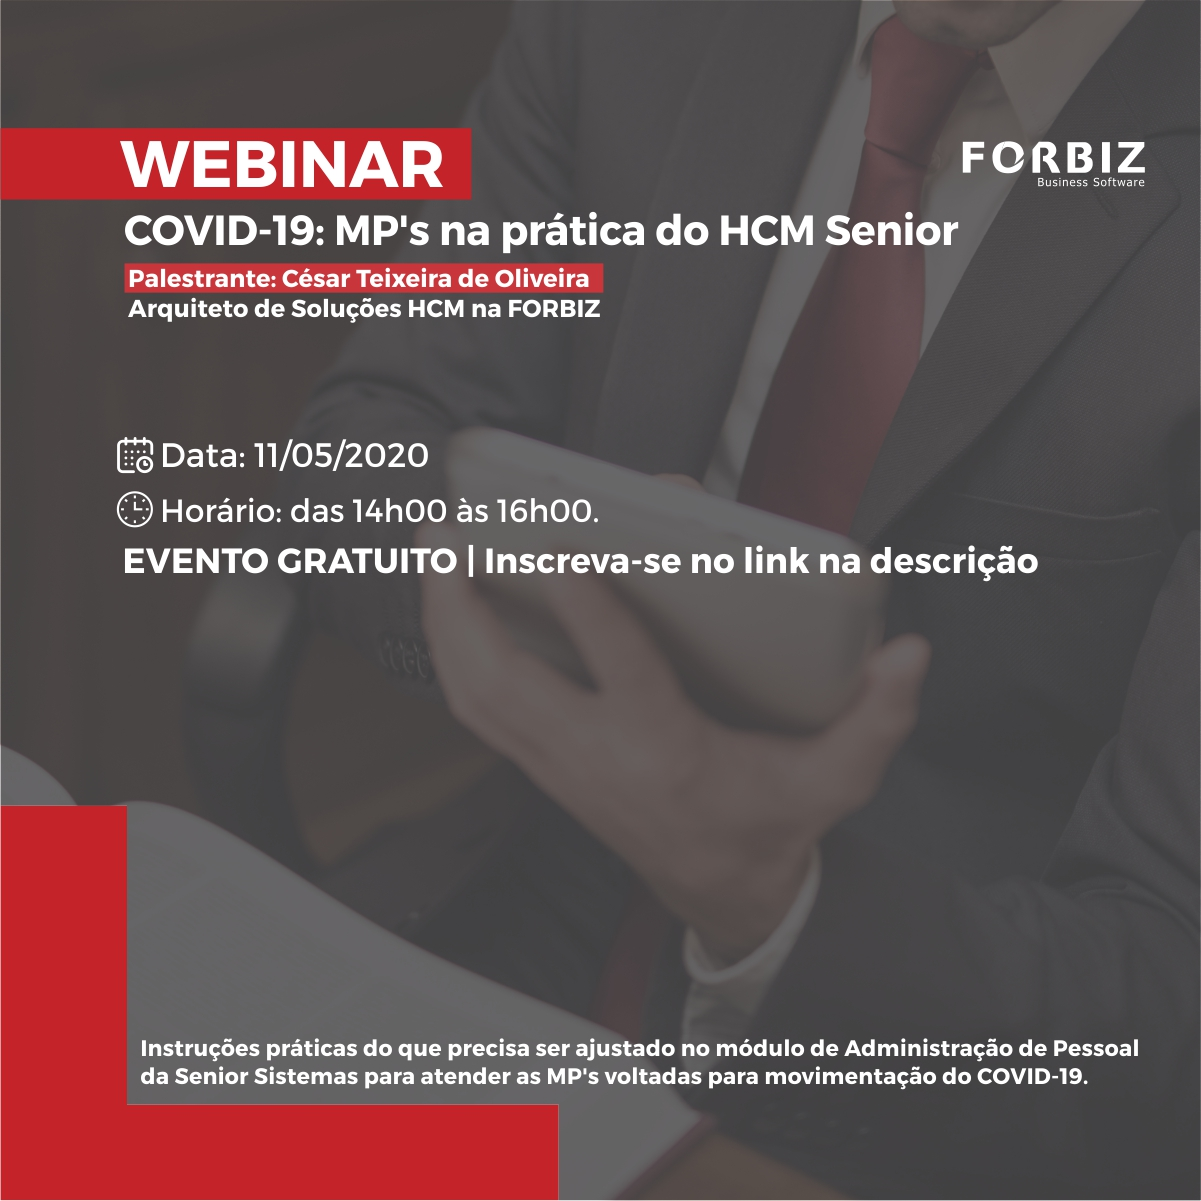 Webinar | COVID-19: MP's na prática do HCM Senior